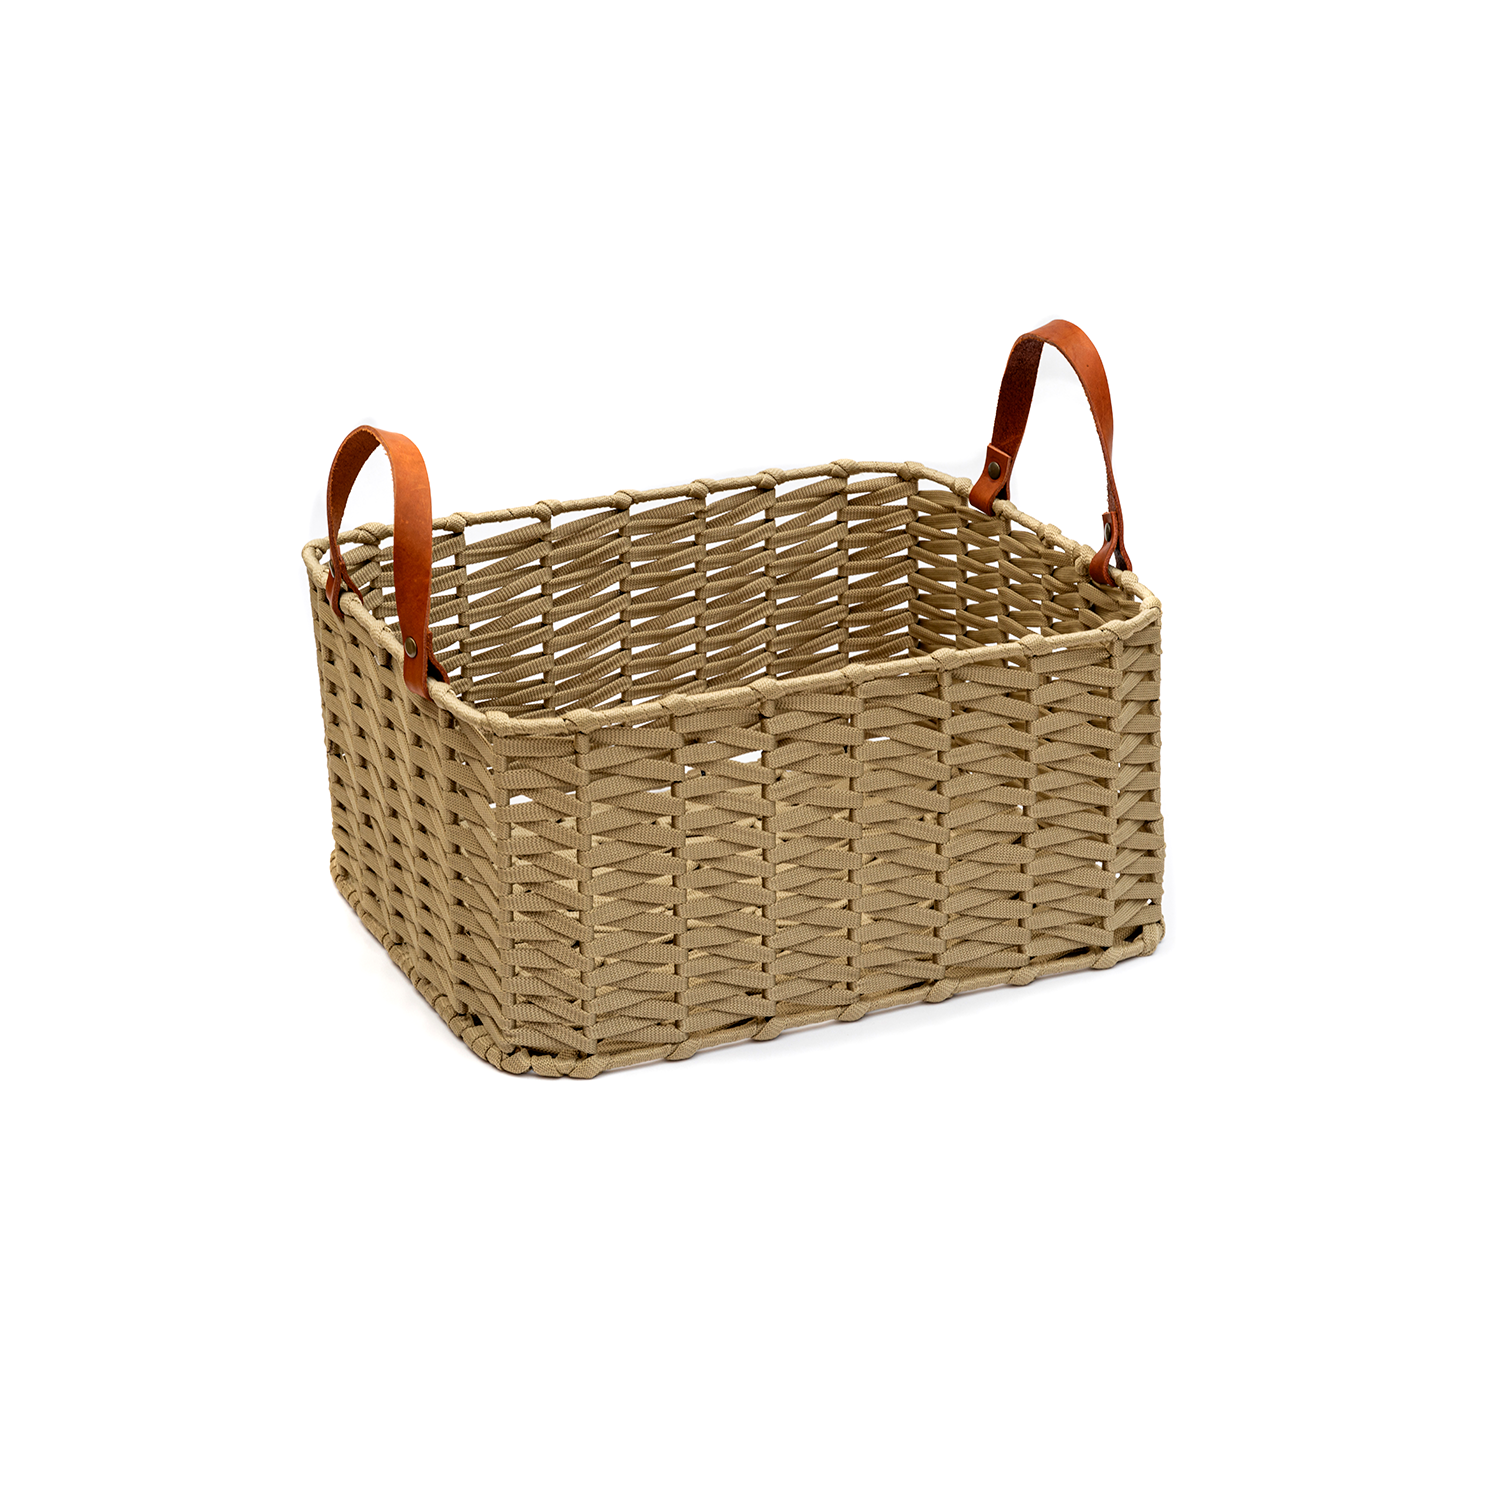 Ocean Nautical Basket Rectangular - The Ocean Nautical Basket is carefully knitted within a trained community of women that found in their craft a way to provide for their families. The outdoor collection is made with synthetic fibres, resistant to weather exposure.  Hand woven nautical cord in metal base and leather handles, made in Brazil.   Please enquire for more information and see colour chart for reference.  | Matter of Stuff